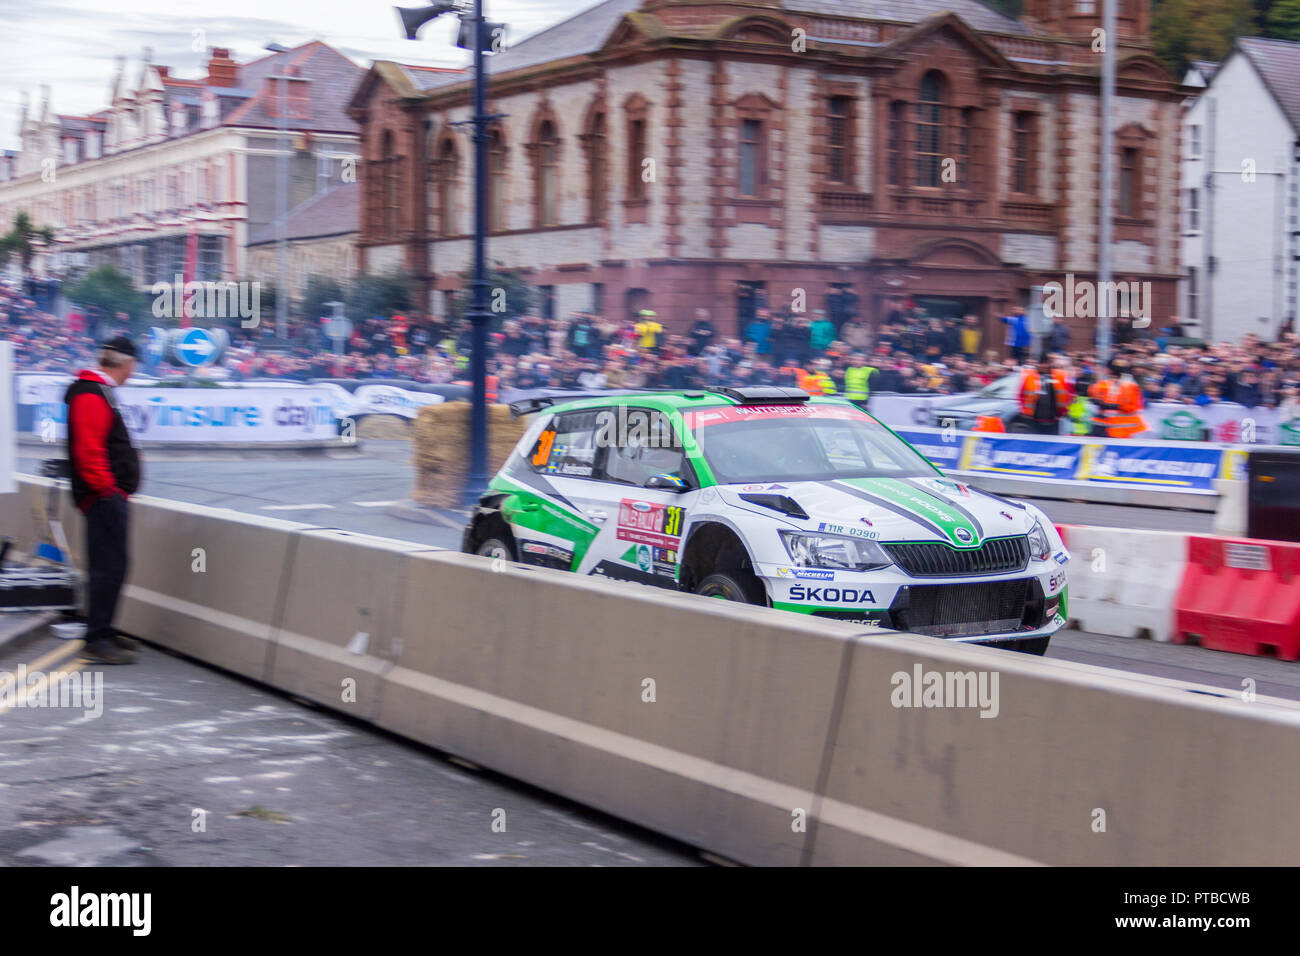 Finish of Wales Rally GB, Llandudno, Great Orme. October 7, 2018. Team no. 31 Tidemand, Andersson - Stock Image